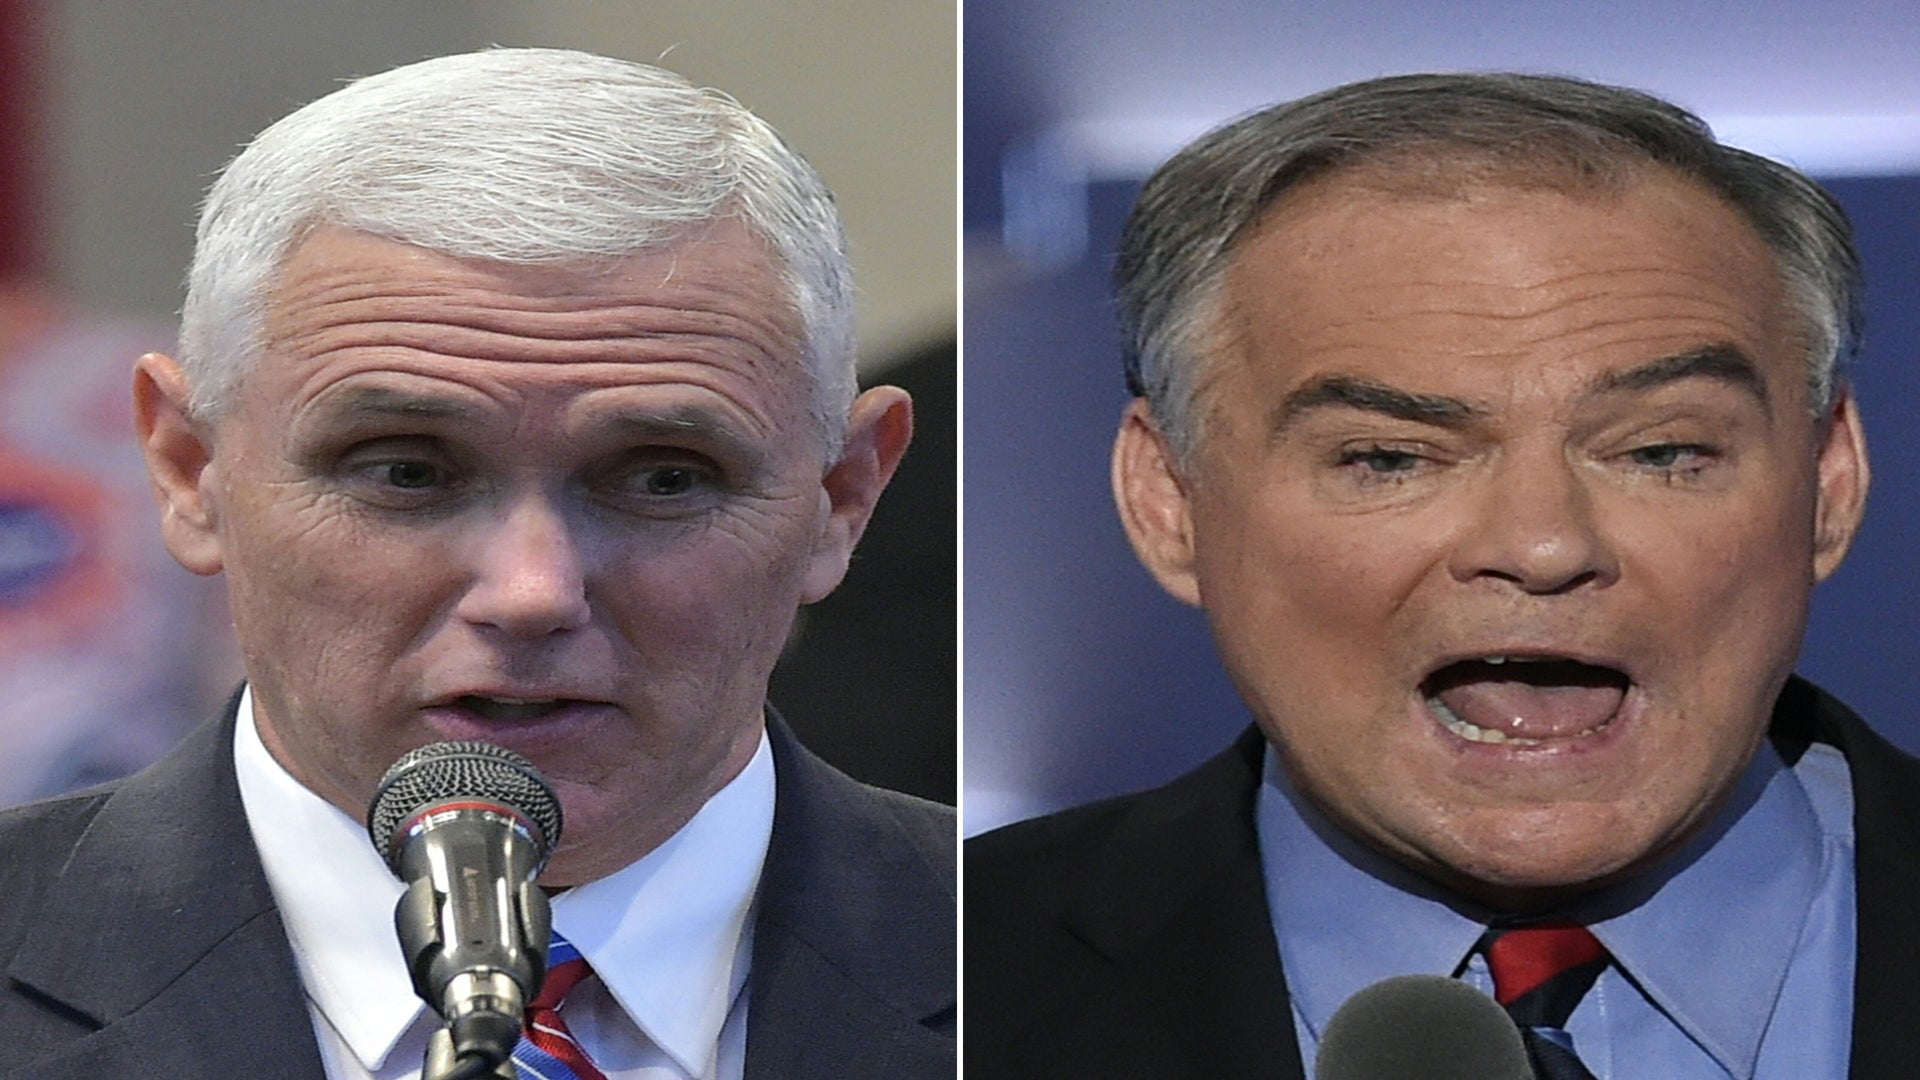 10 Things To Know About The Vice Presidential Candidates